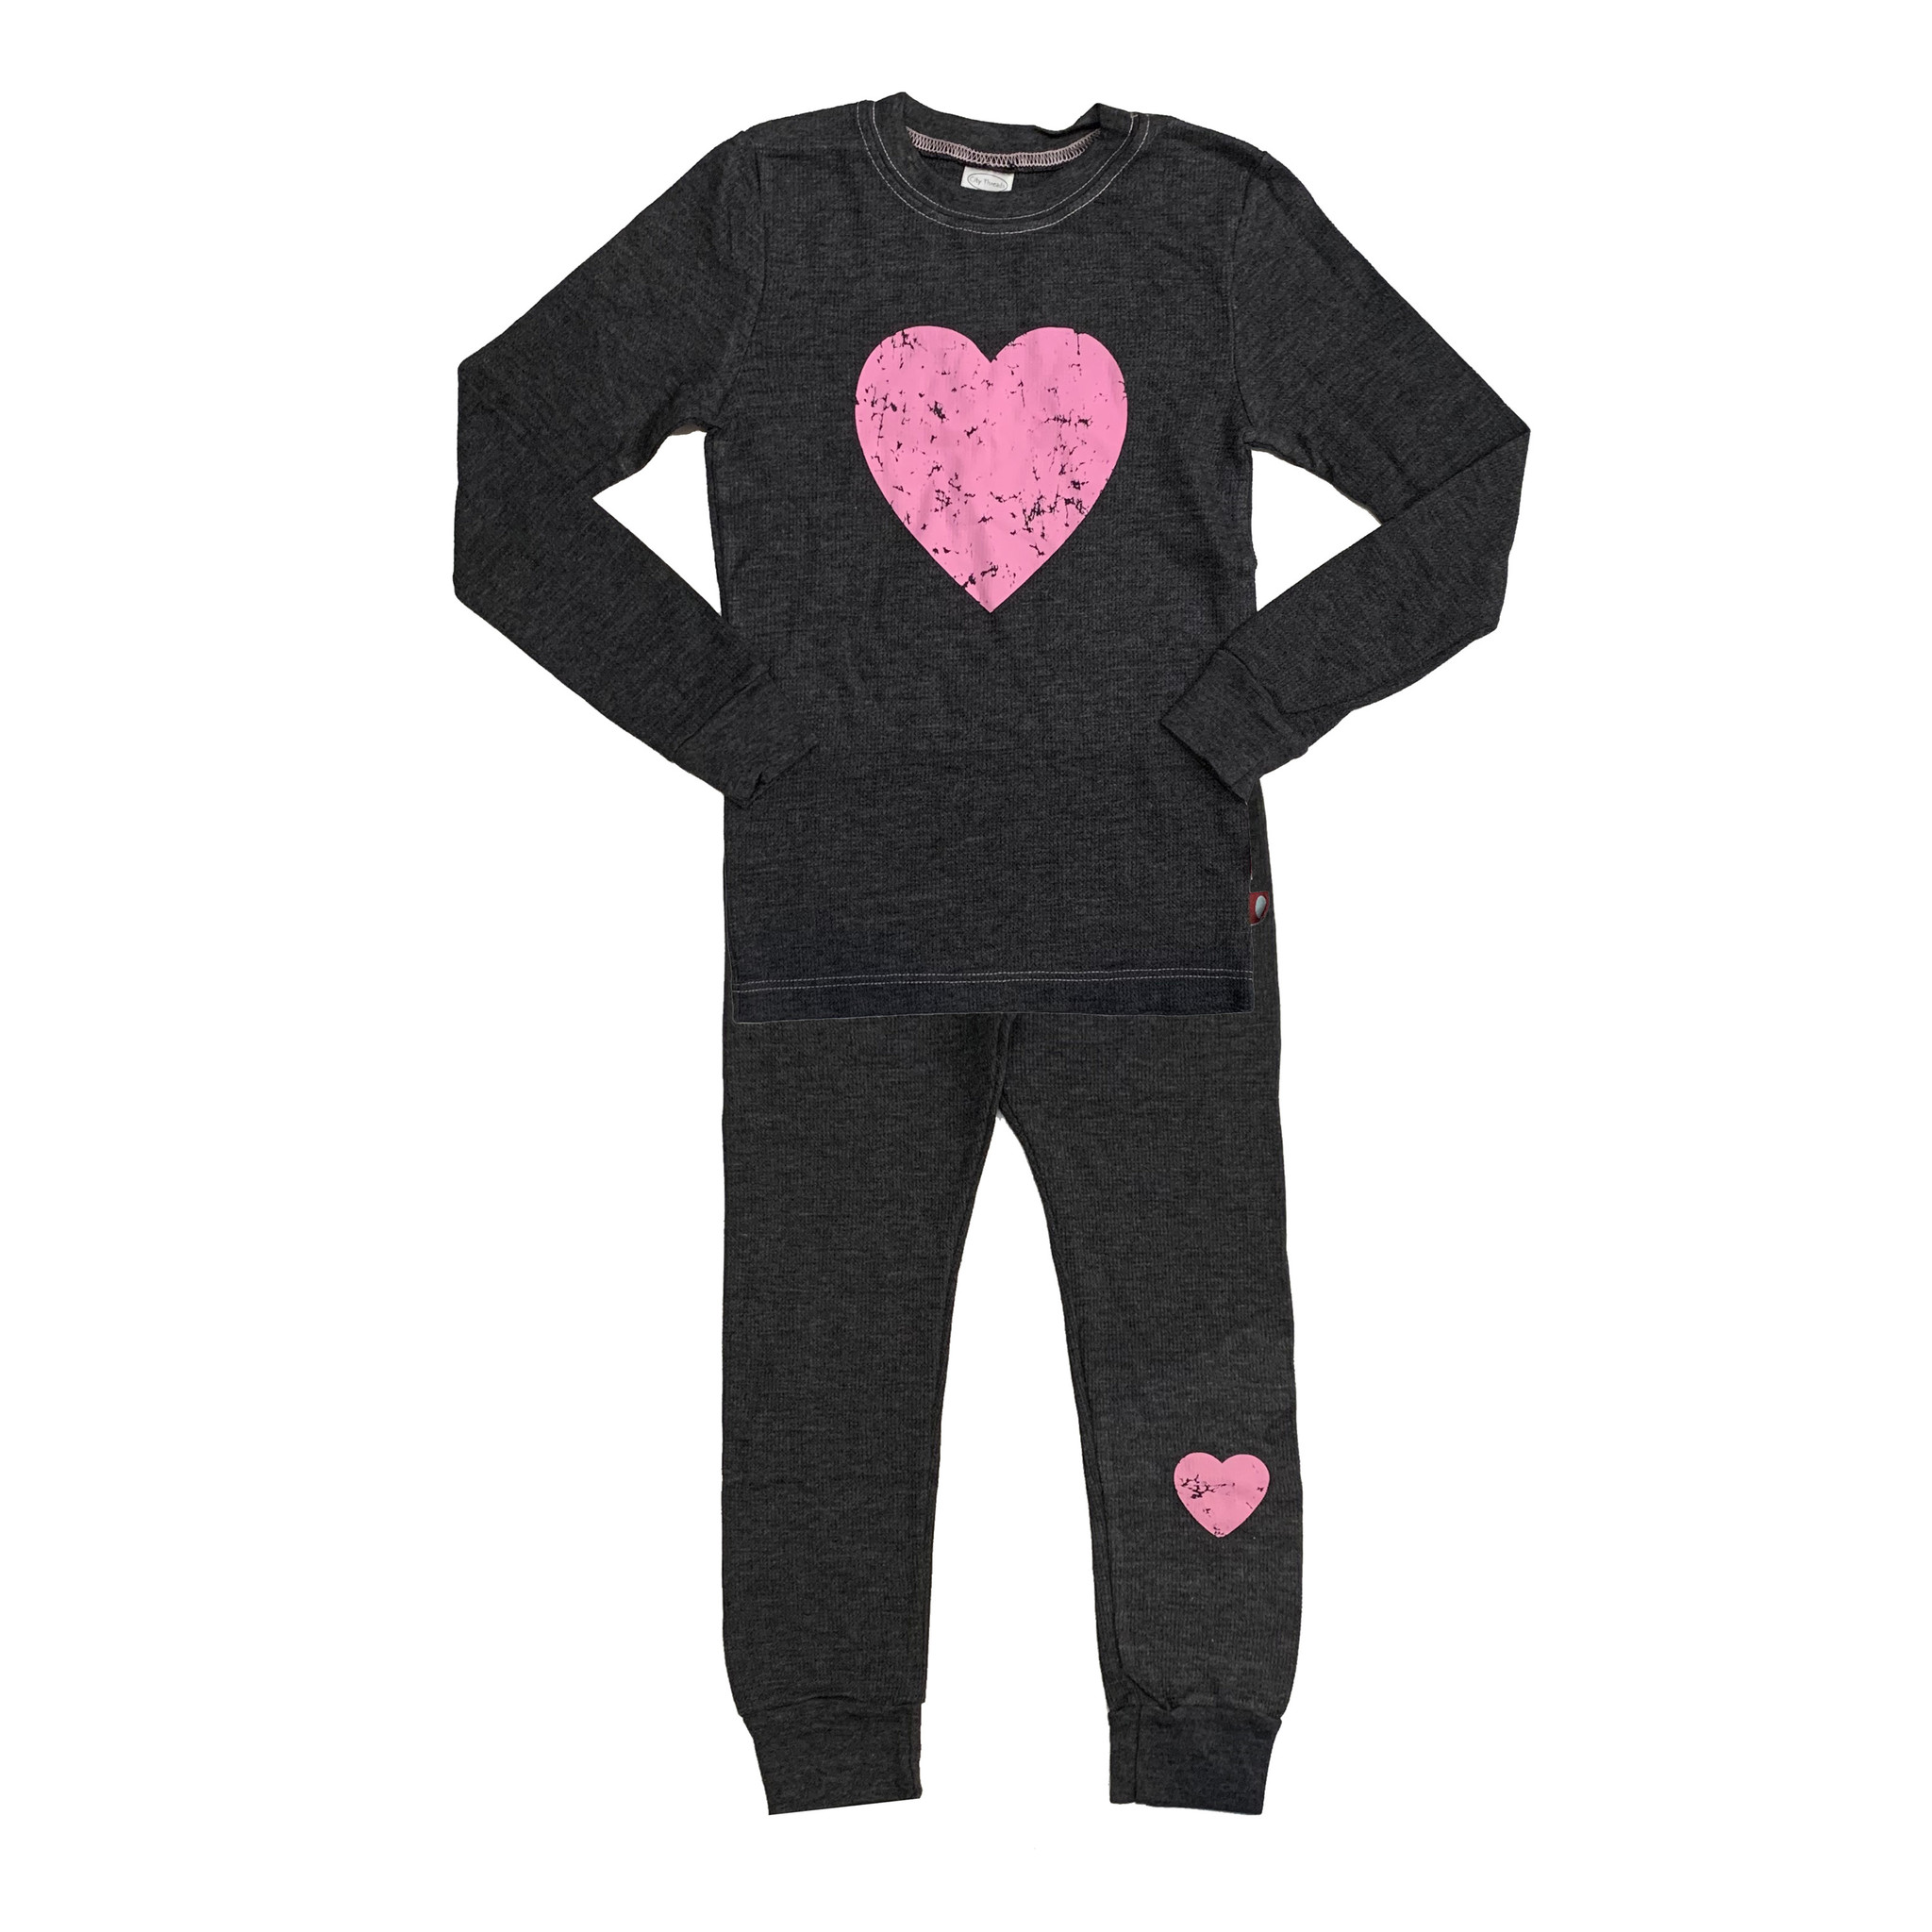 Charcoal Thermal Pajamas with Pink Heart